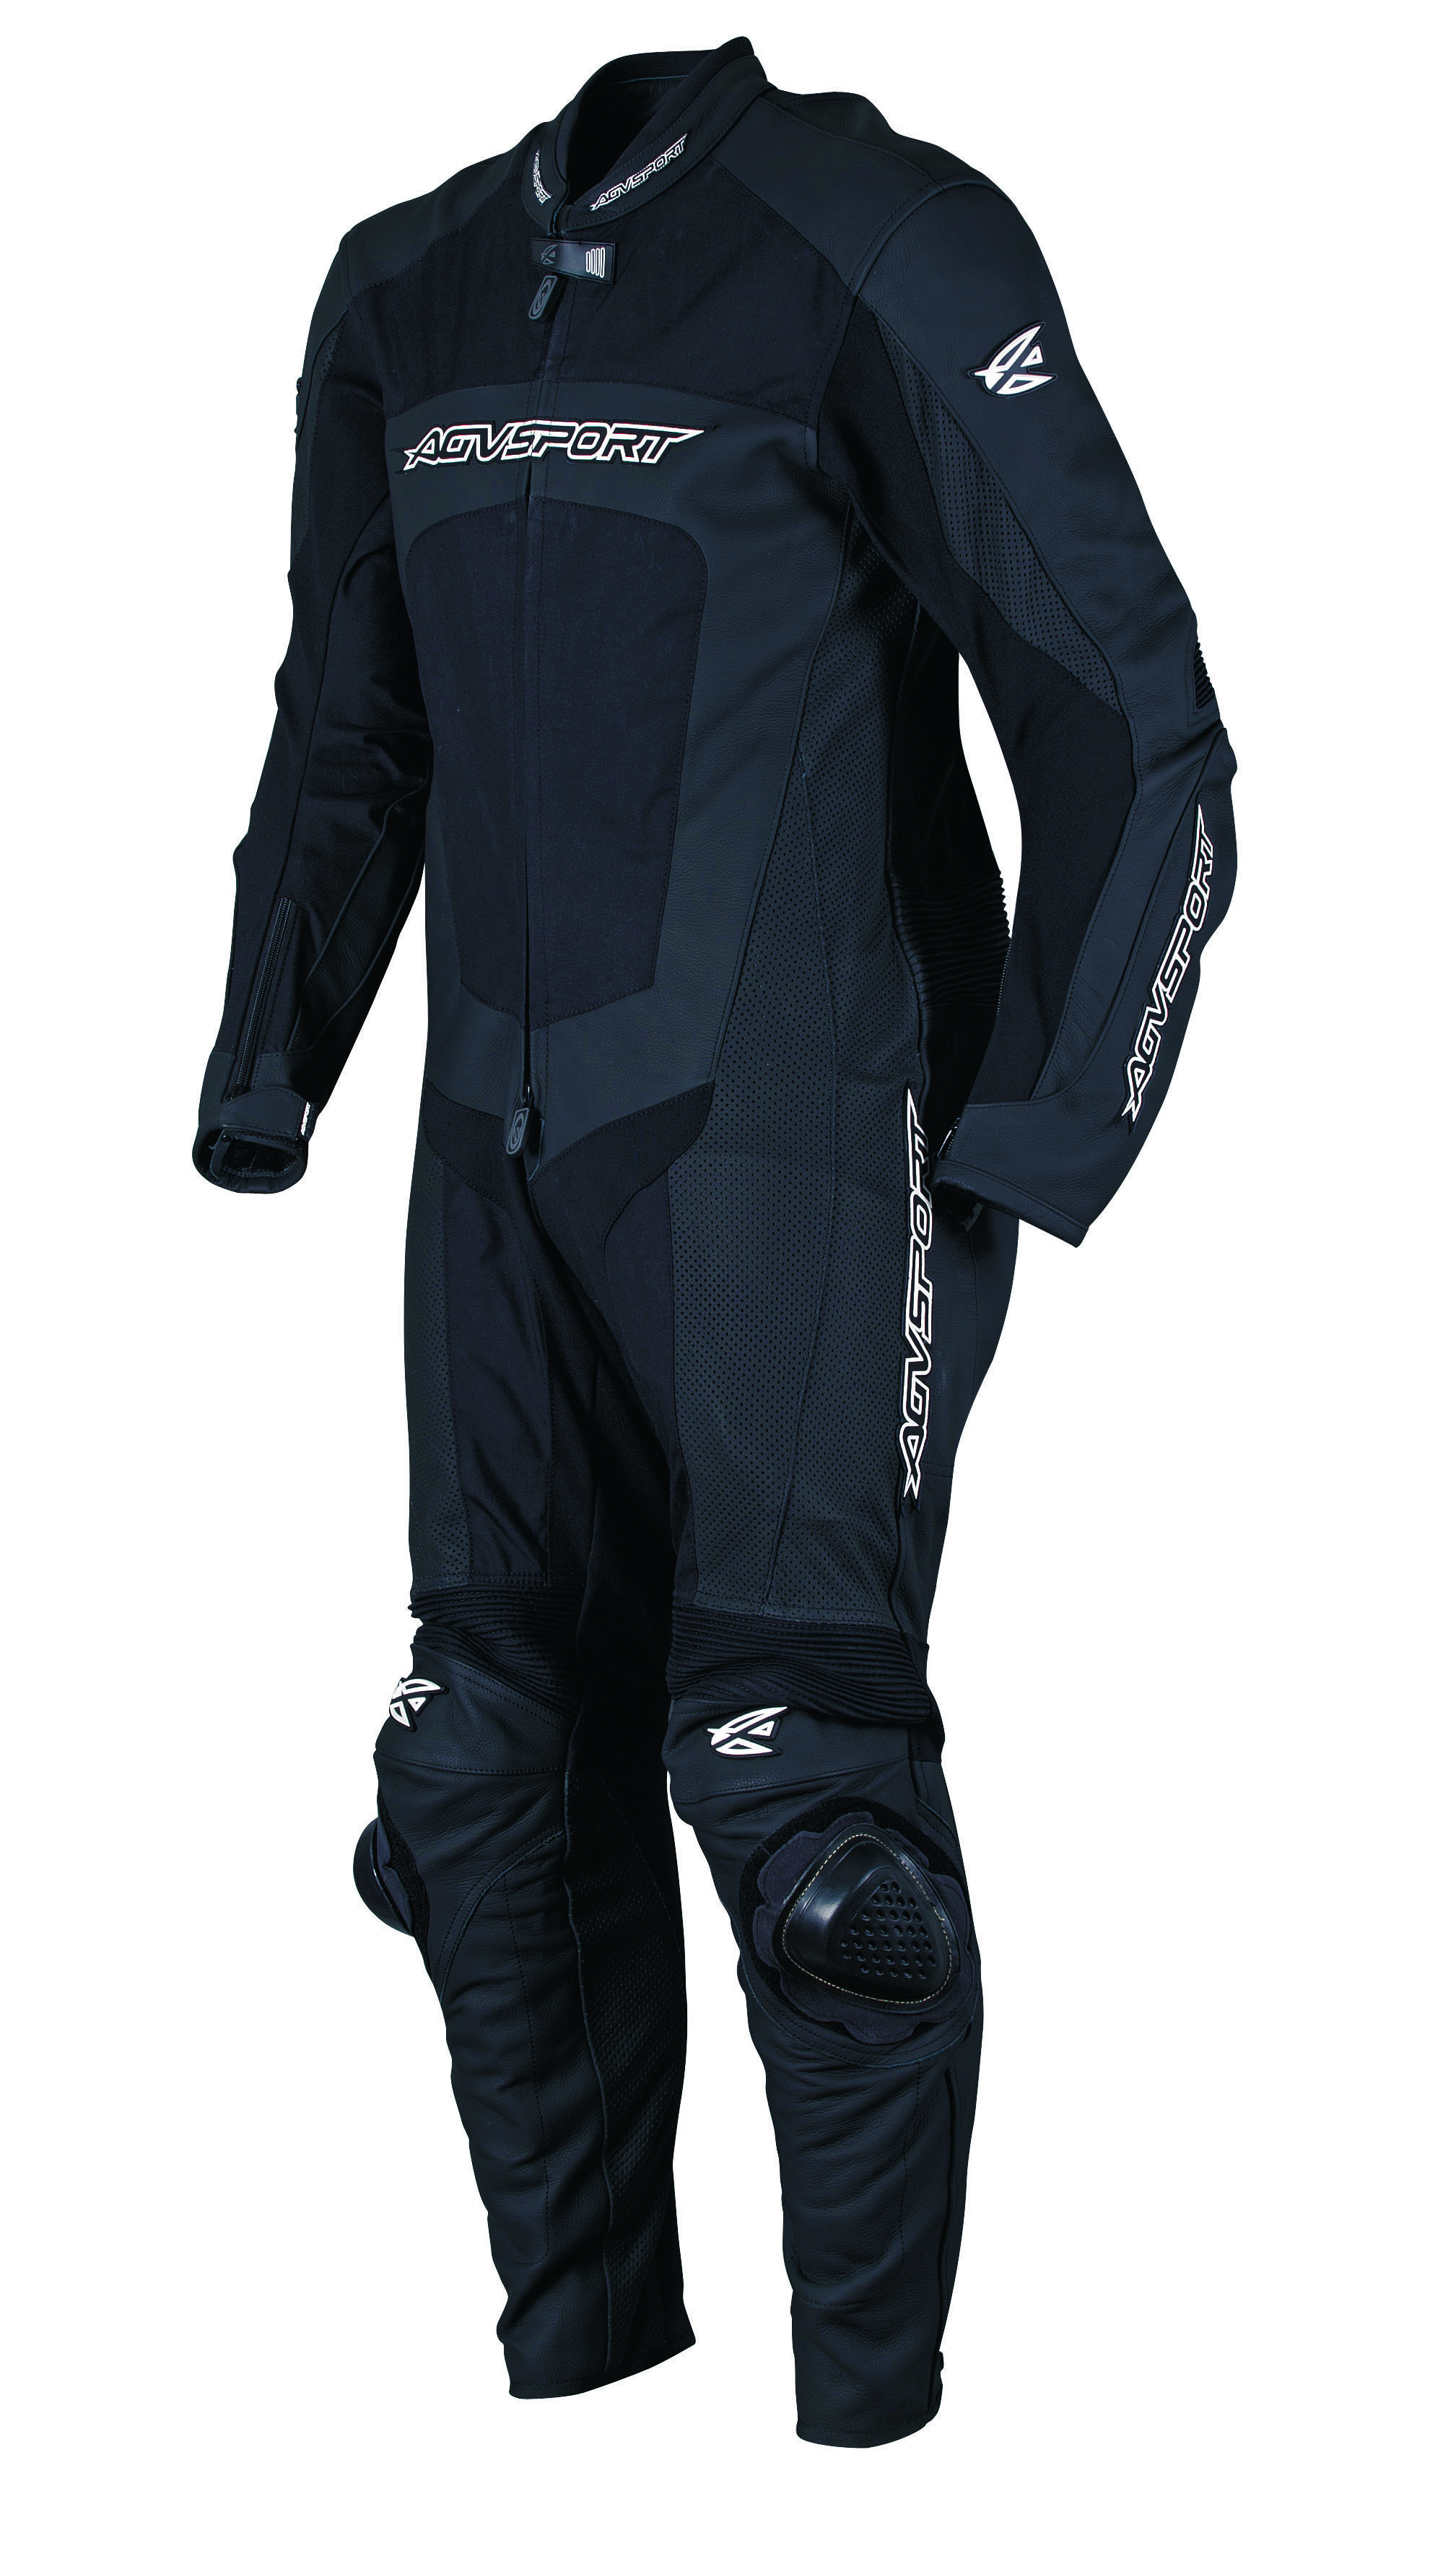 AGVSPORT Strike (Black) 1-Piece Leather/Textile Racing Suit Constructed from Grade A premium 1.1mm(body) too 1.3mm(impact areas) full grain cowhide in high abrasion areas. Tough Polytex 100% 500 Denier Polyester Fabricin the chest, inner thighs and lower back areas. ASSC and multi-tech, multi-four, and multi-triple stitching.CE approved protection (EN 1621- level 1). Click picture for more information!